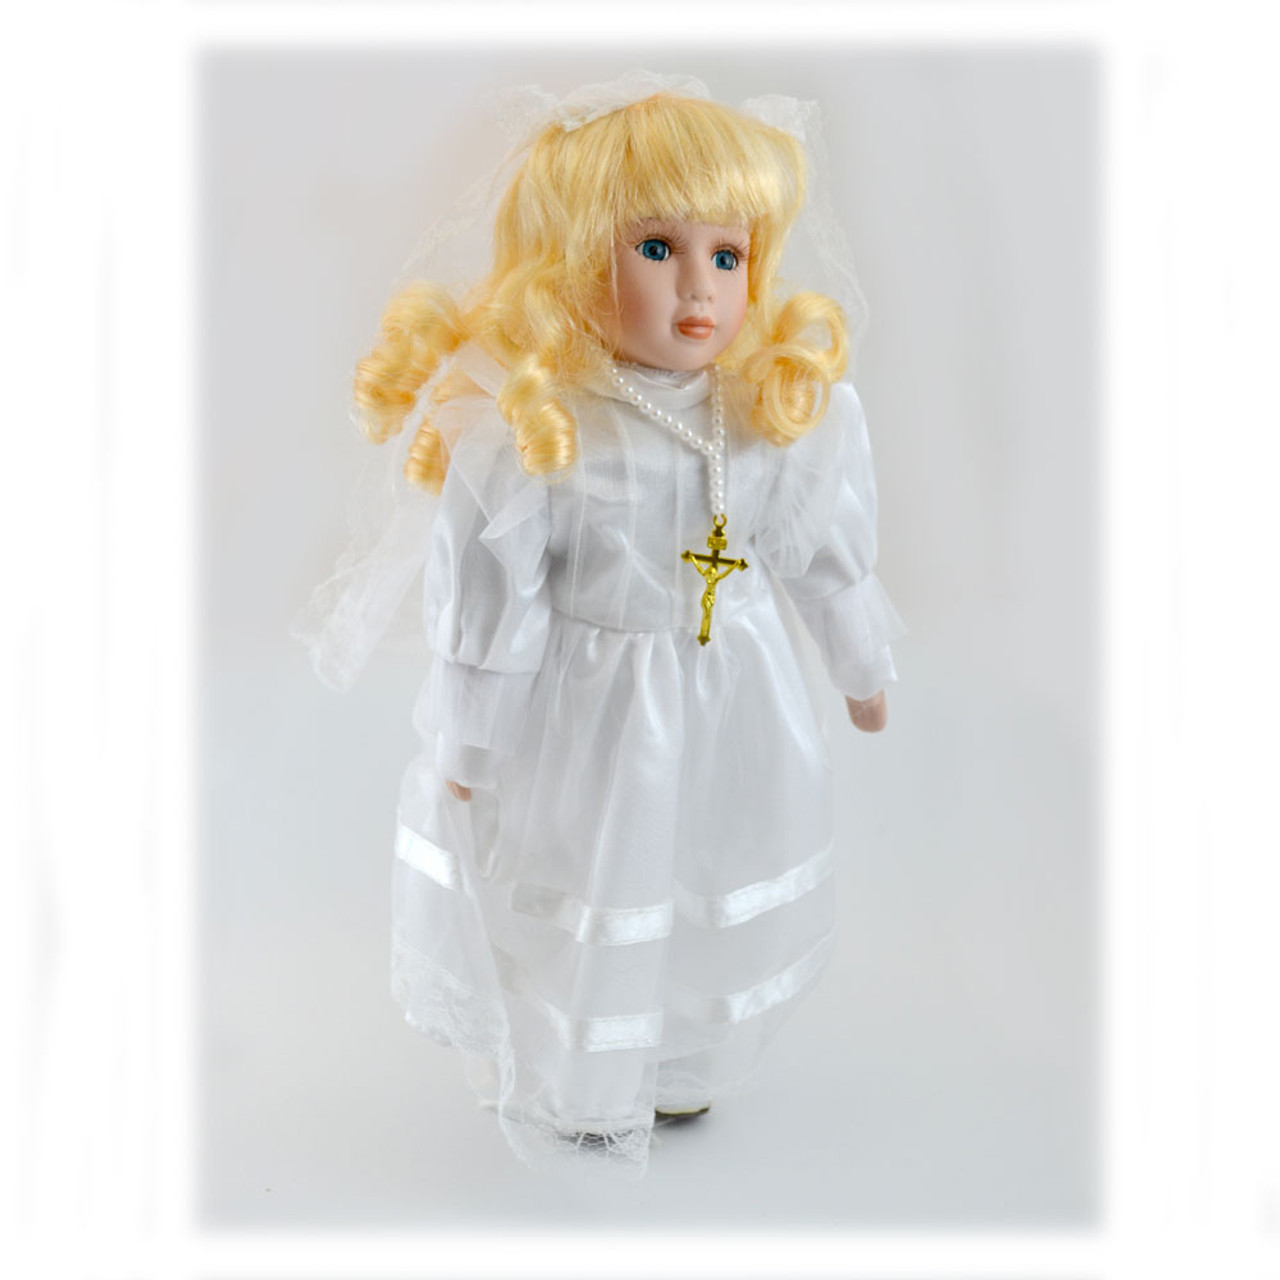 First Communion Blonde Doll, 12 Inch with Doll Stand